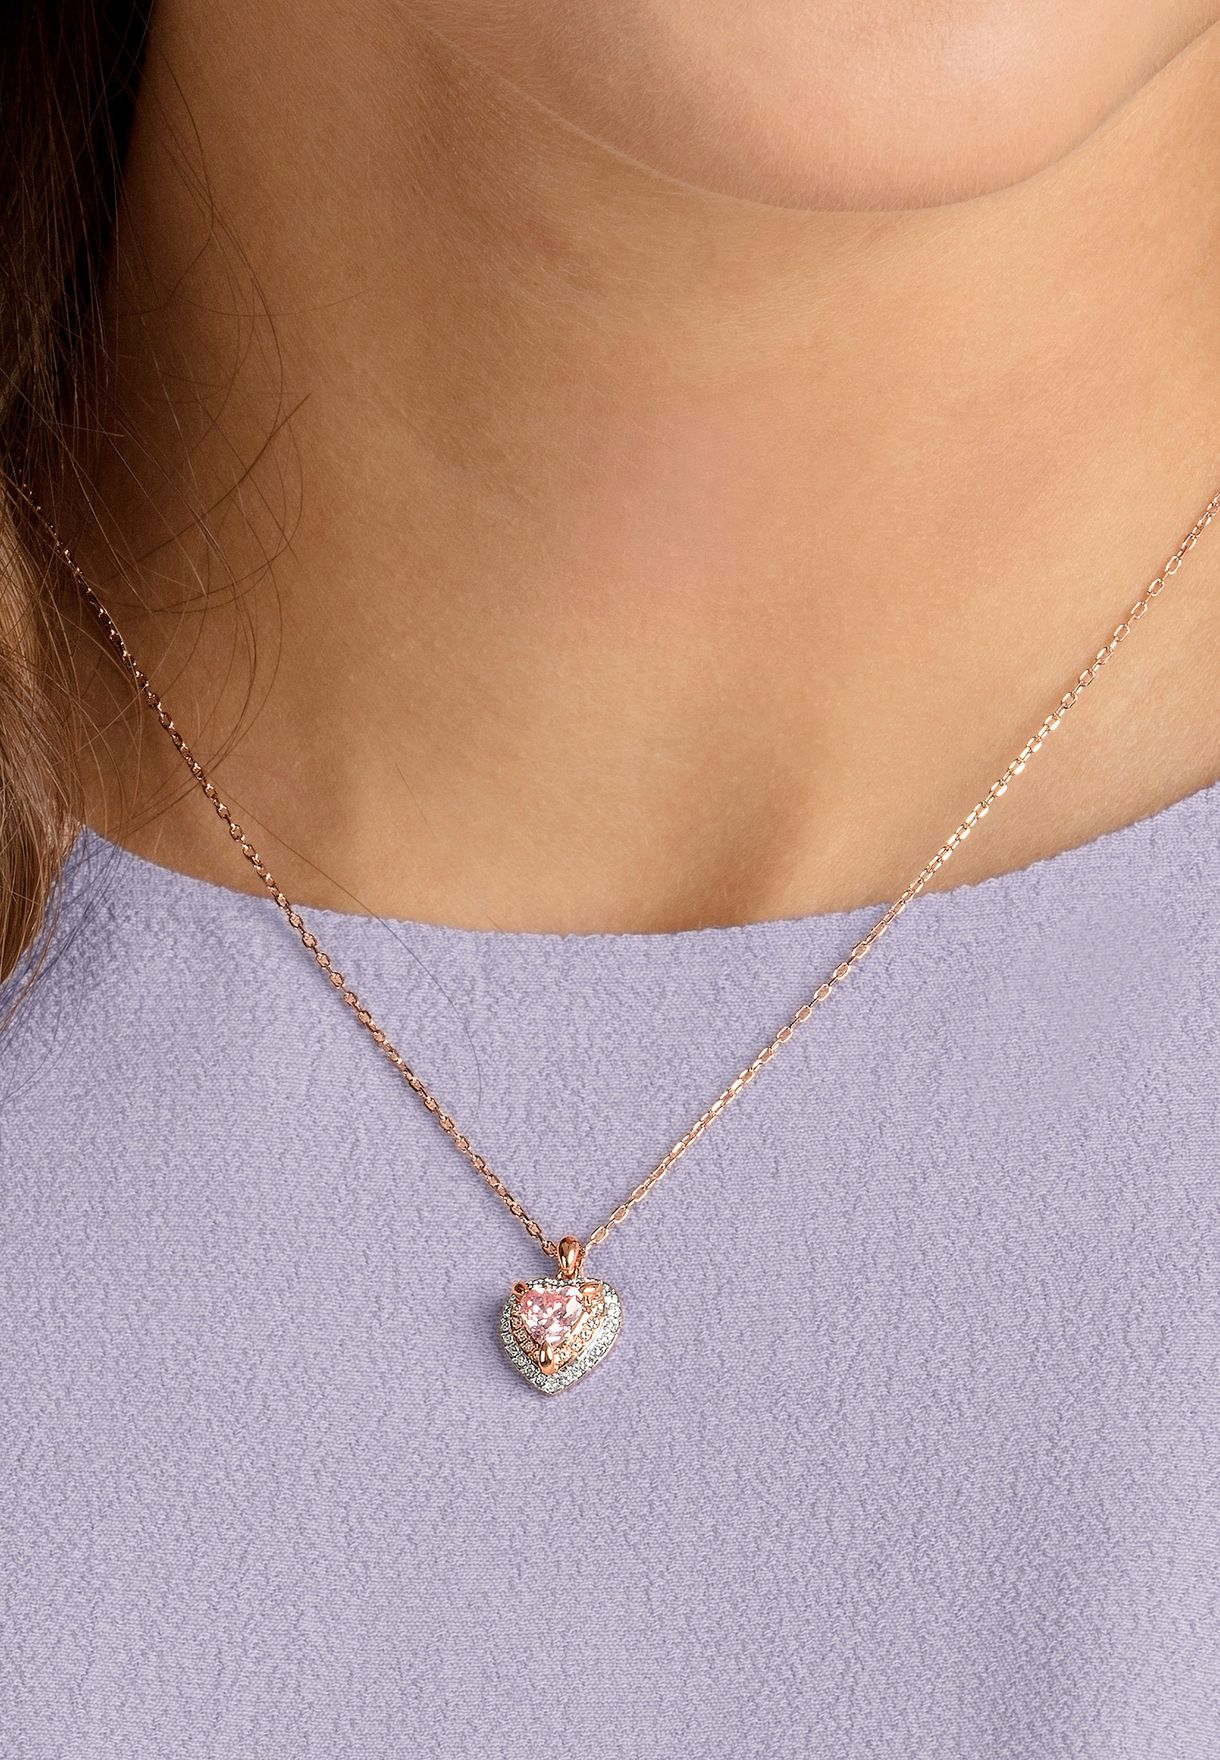 One Necklace With Pendant